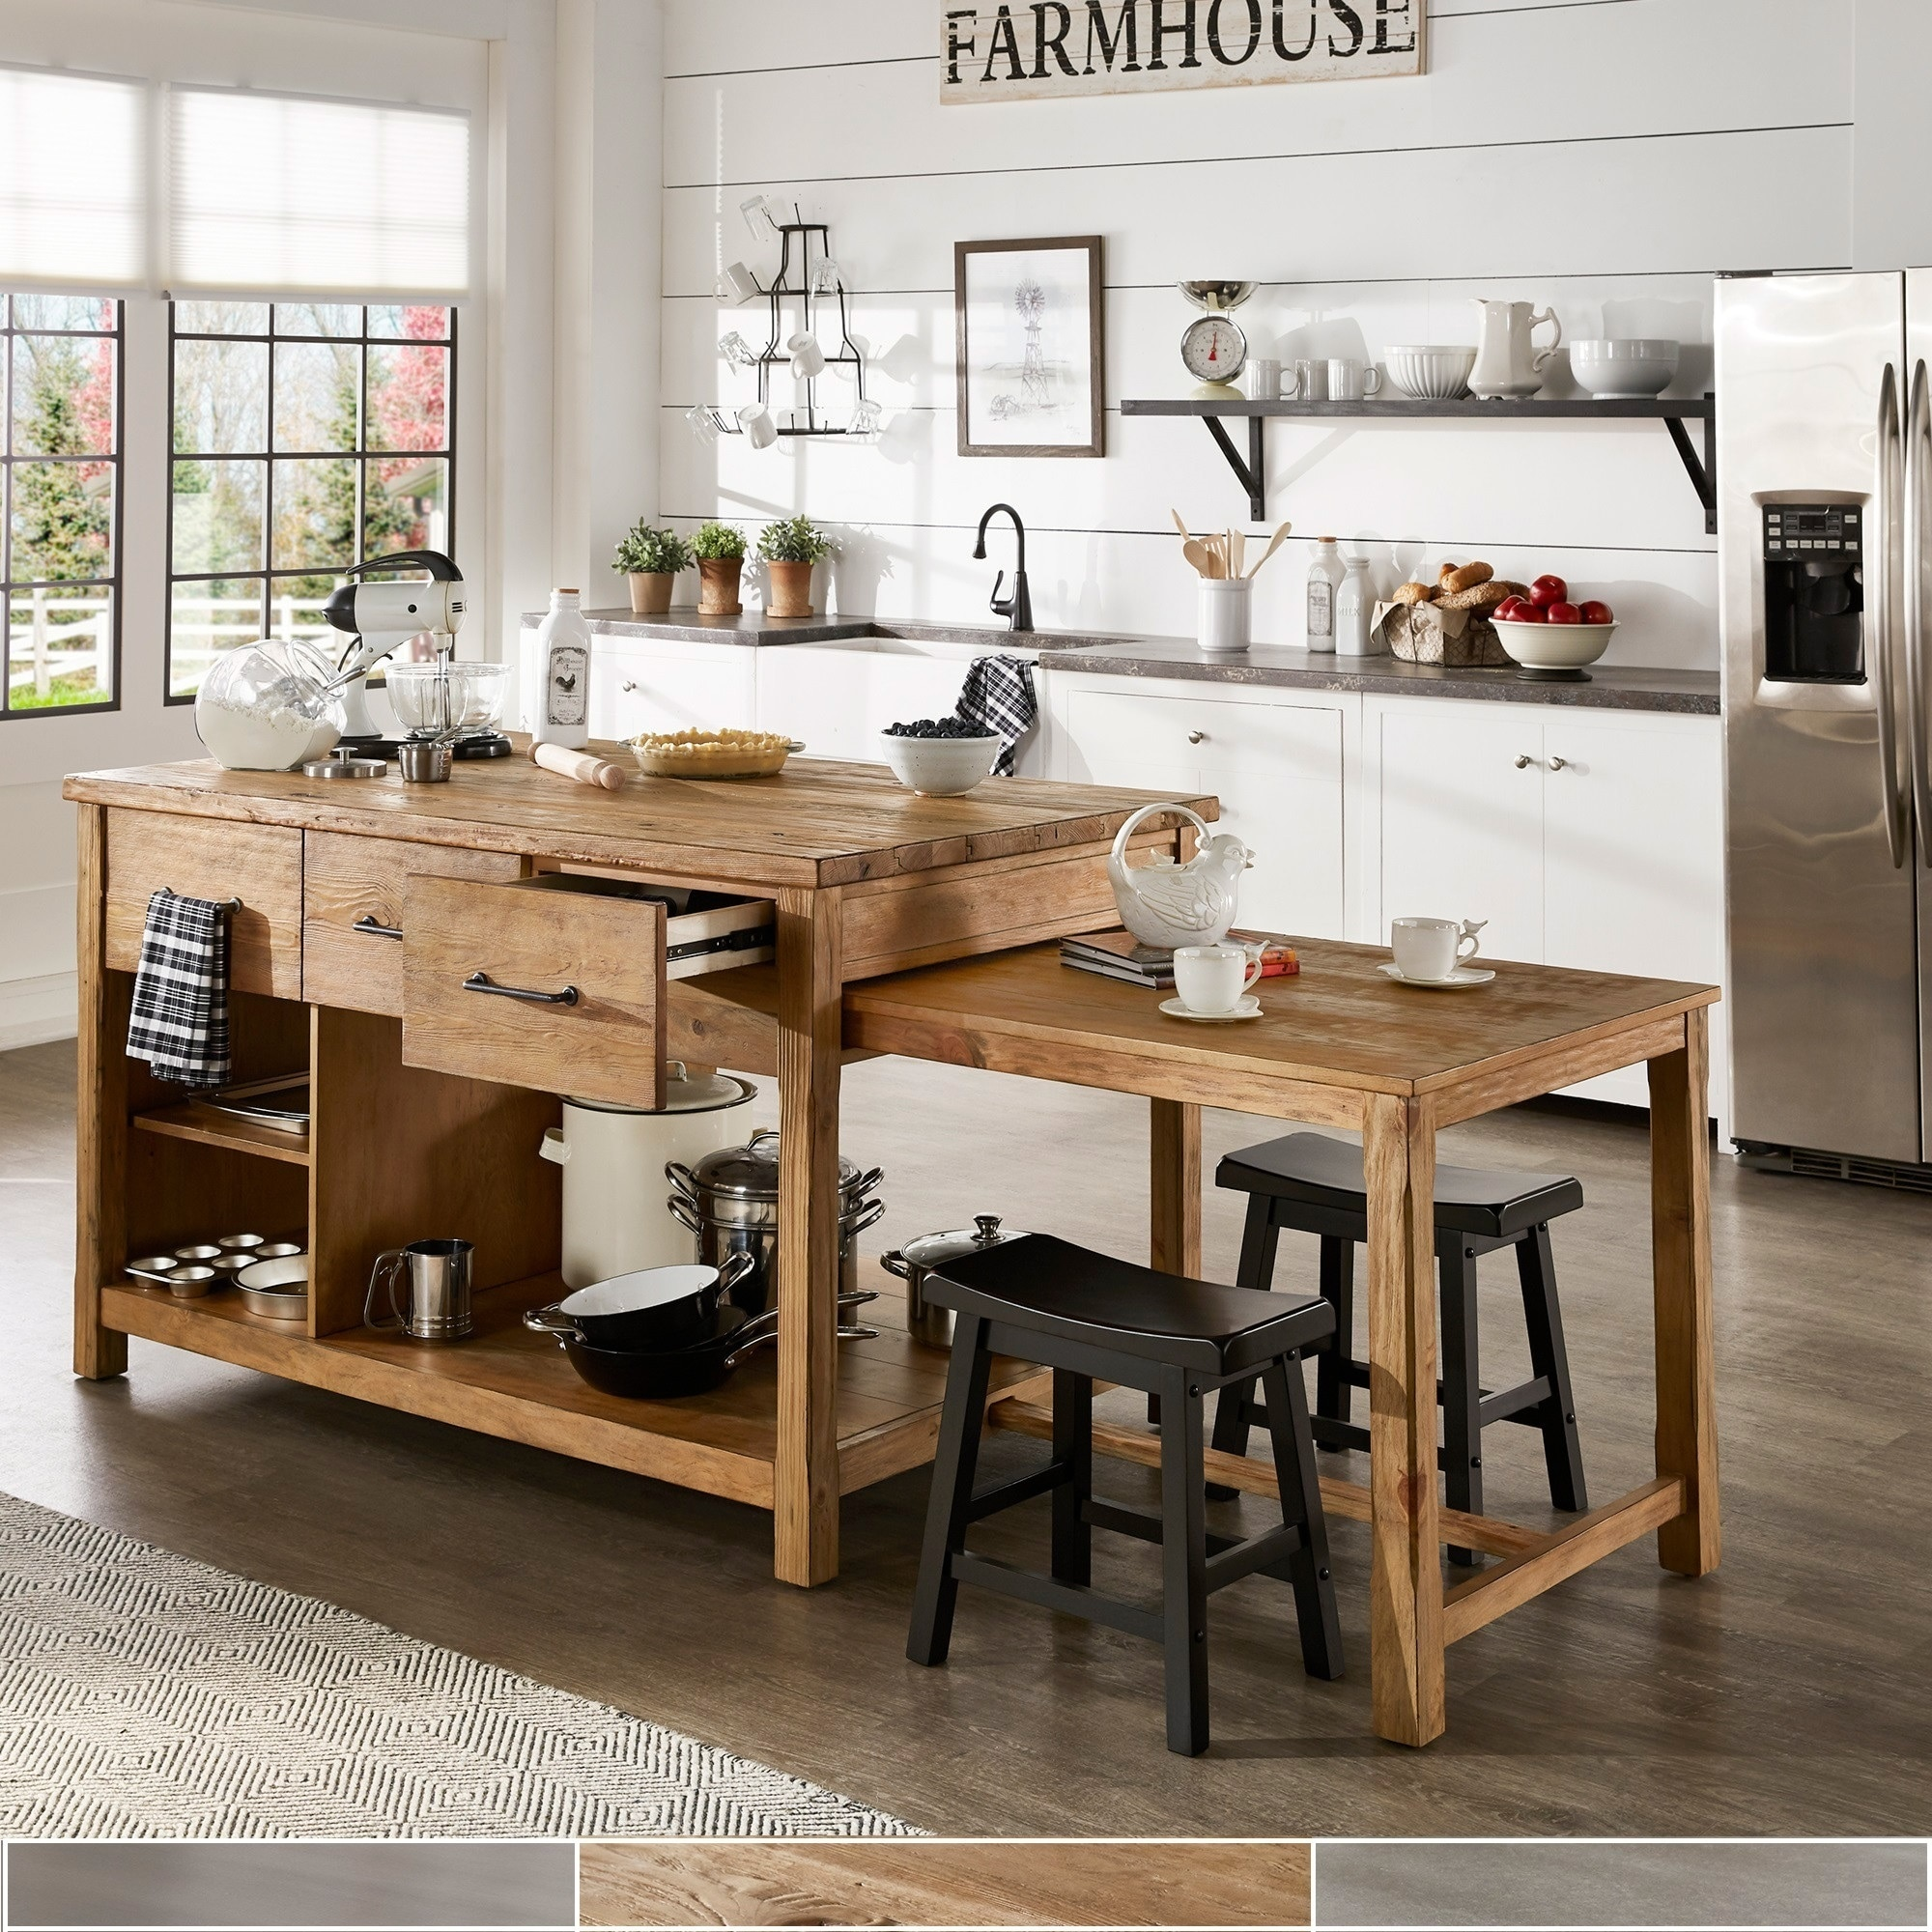 Commercial Kitchen Design App Free Buy Kitchen Islands Online At Overstock Our Best Kitchen Furniture